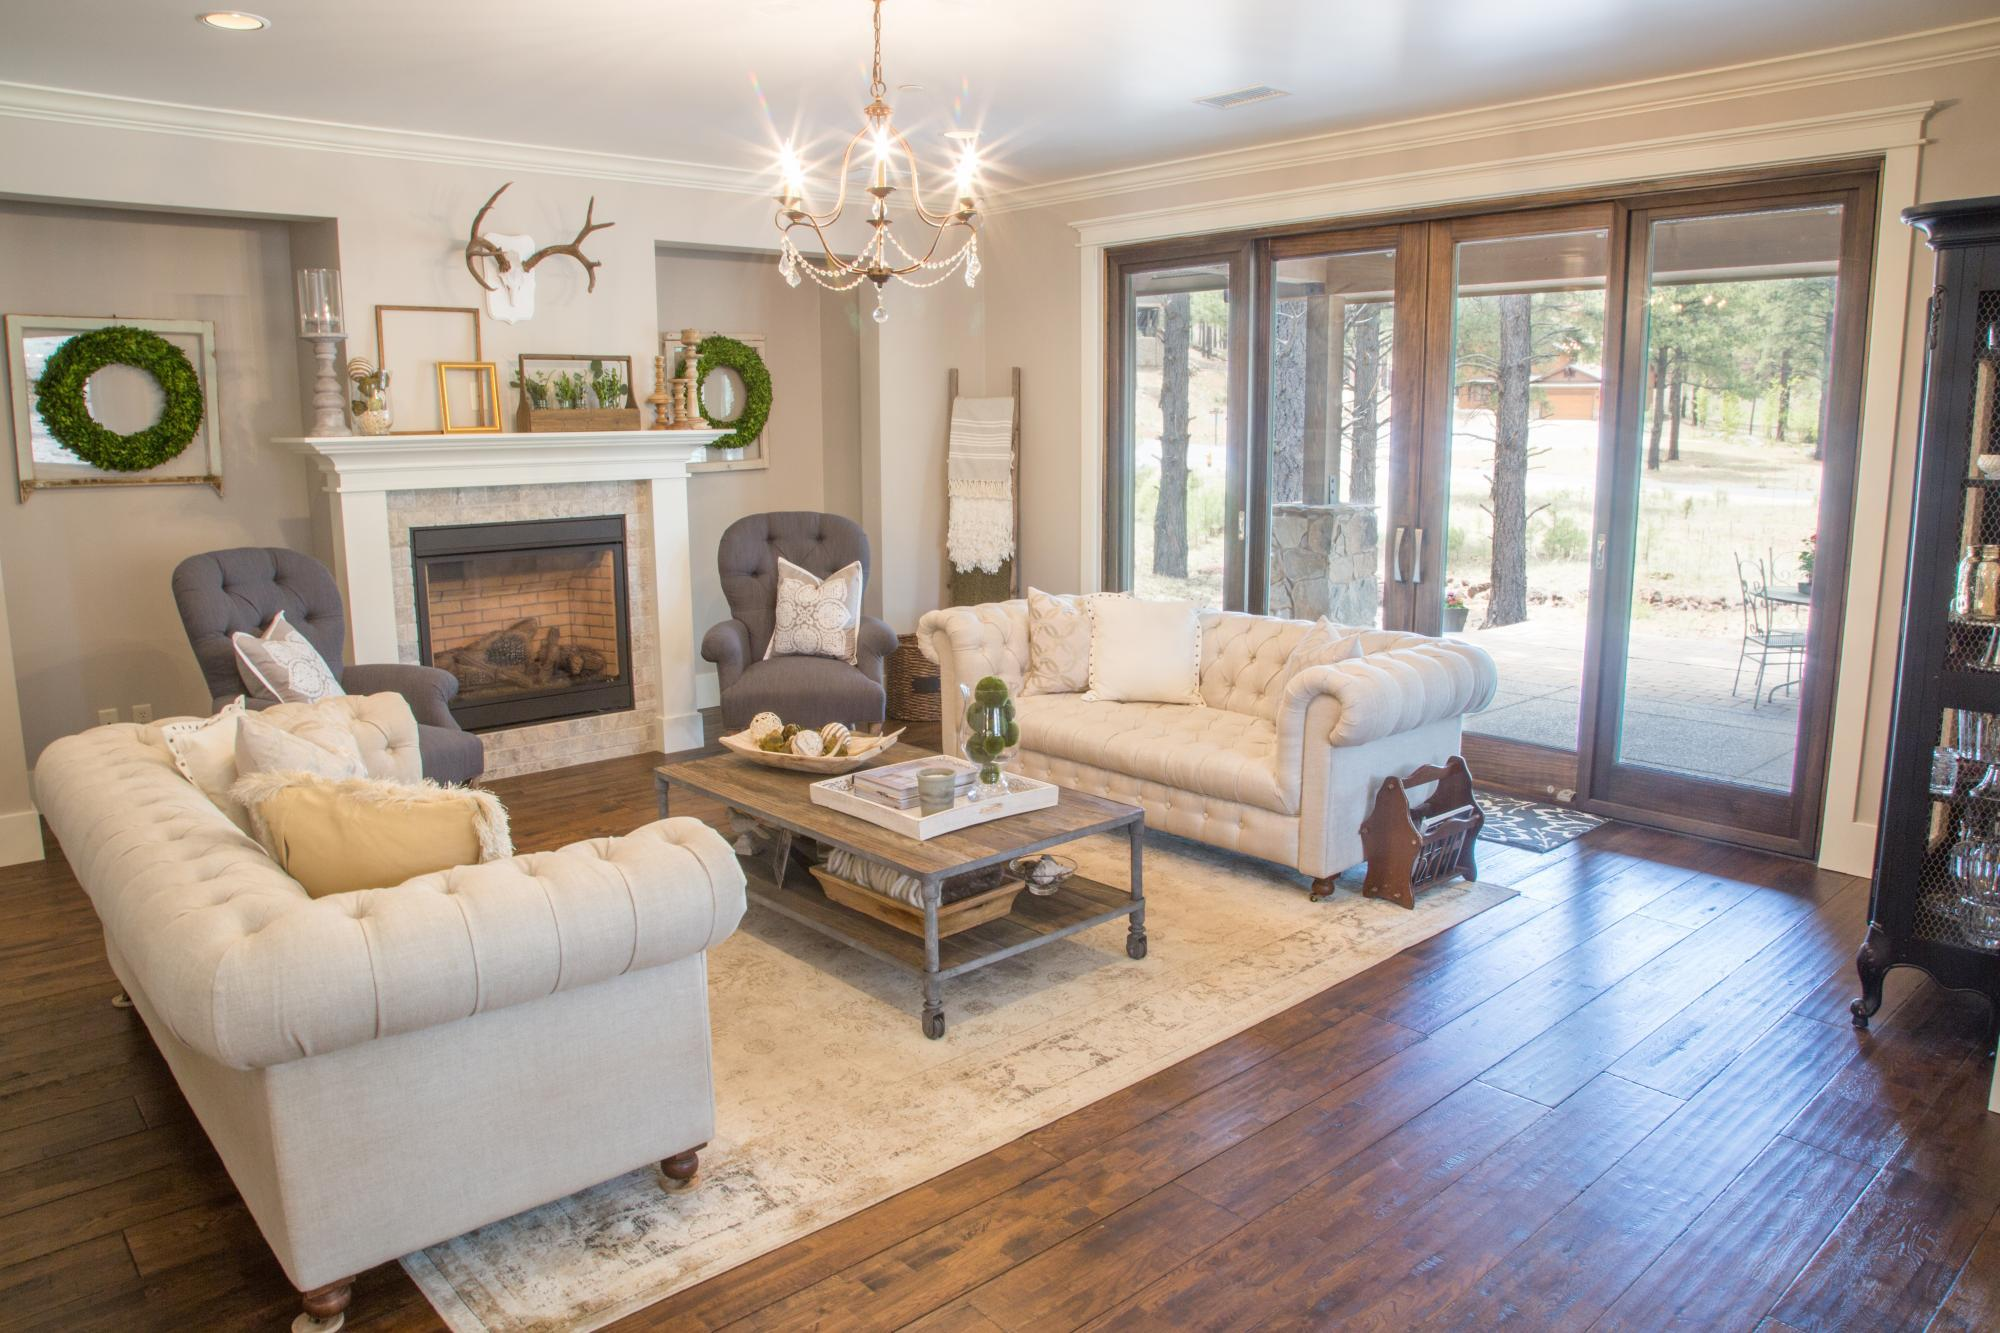 Living Area featured in the Aspen Shadows Plan 3405 By Capstone Homes in Flagstaff, AZ